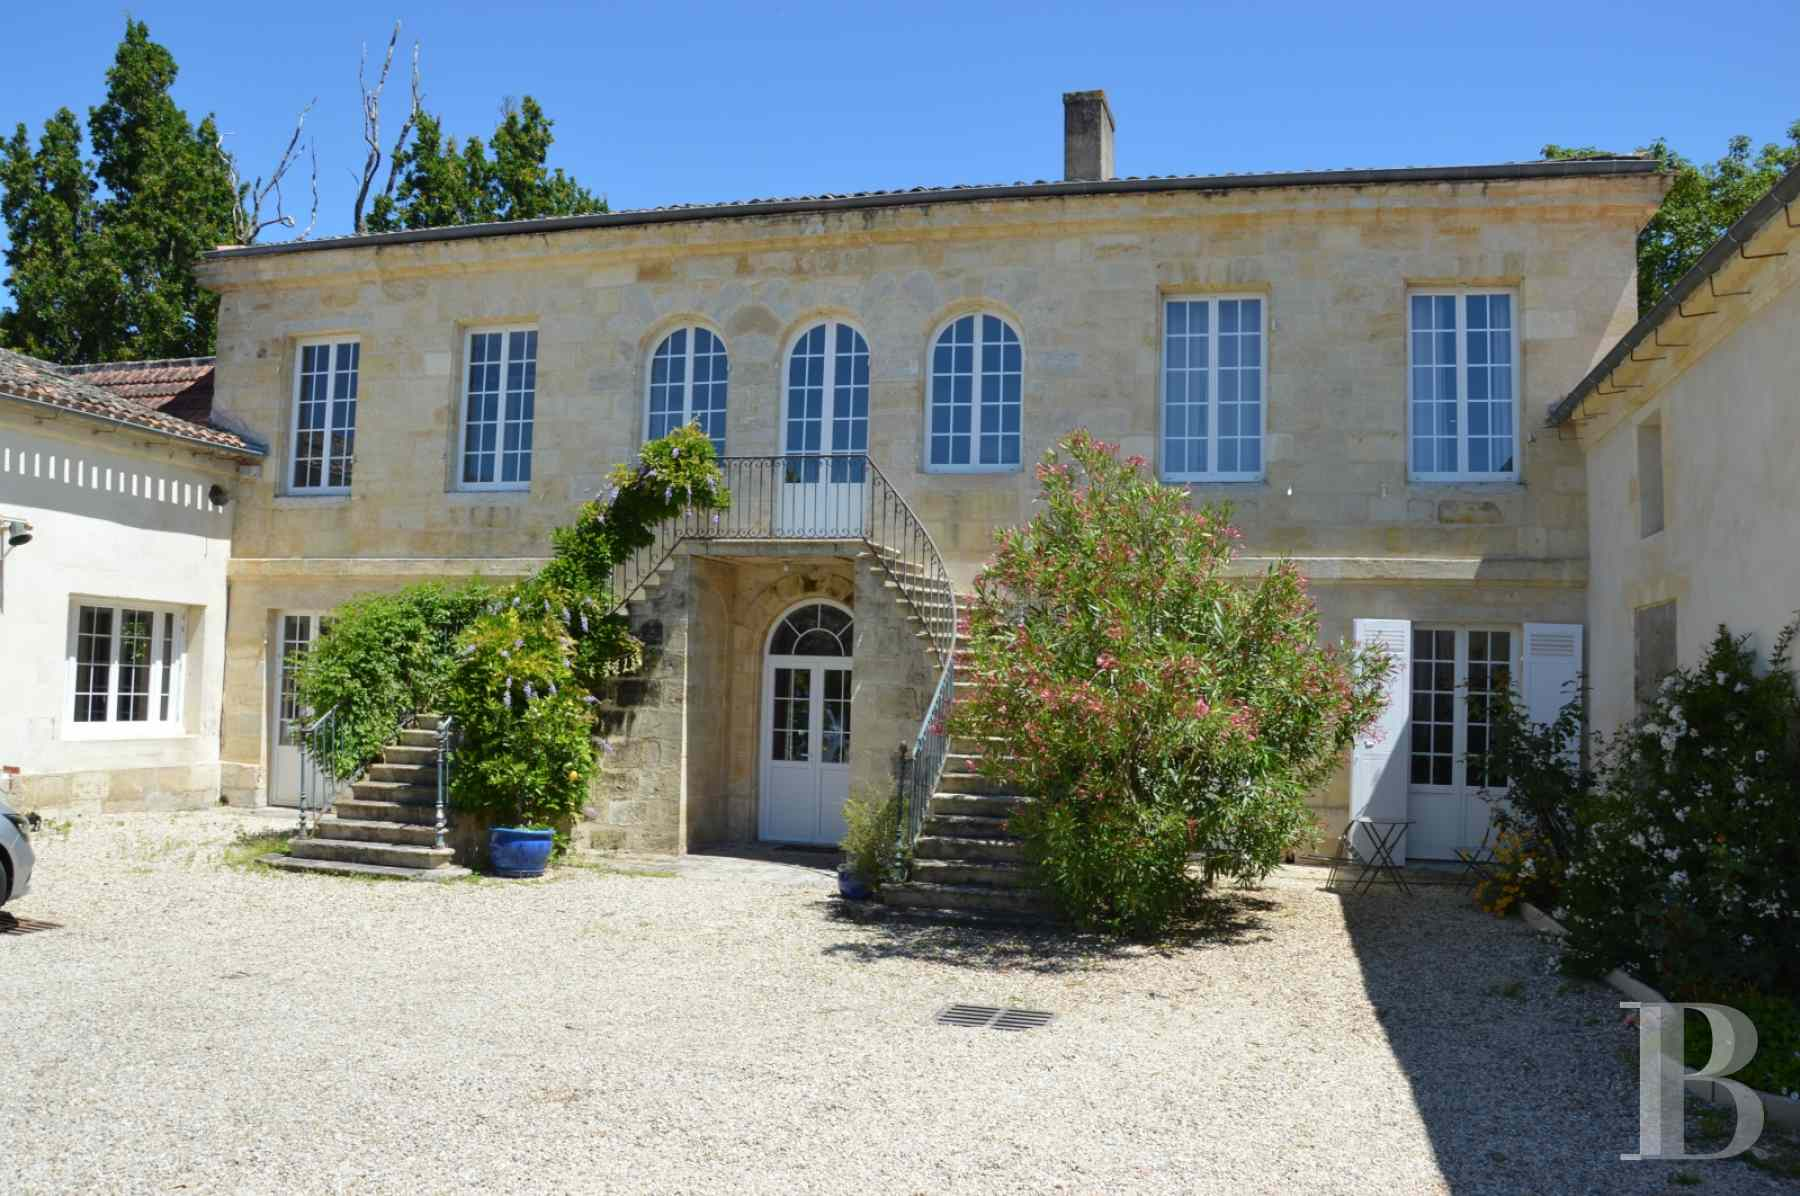 chateaux for sale France aquitaine 18th century - 1 zoom